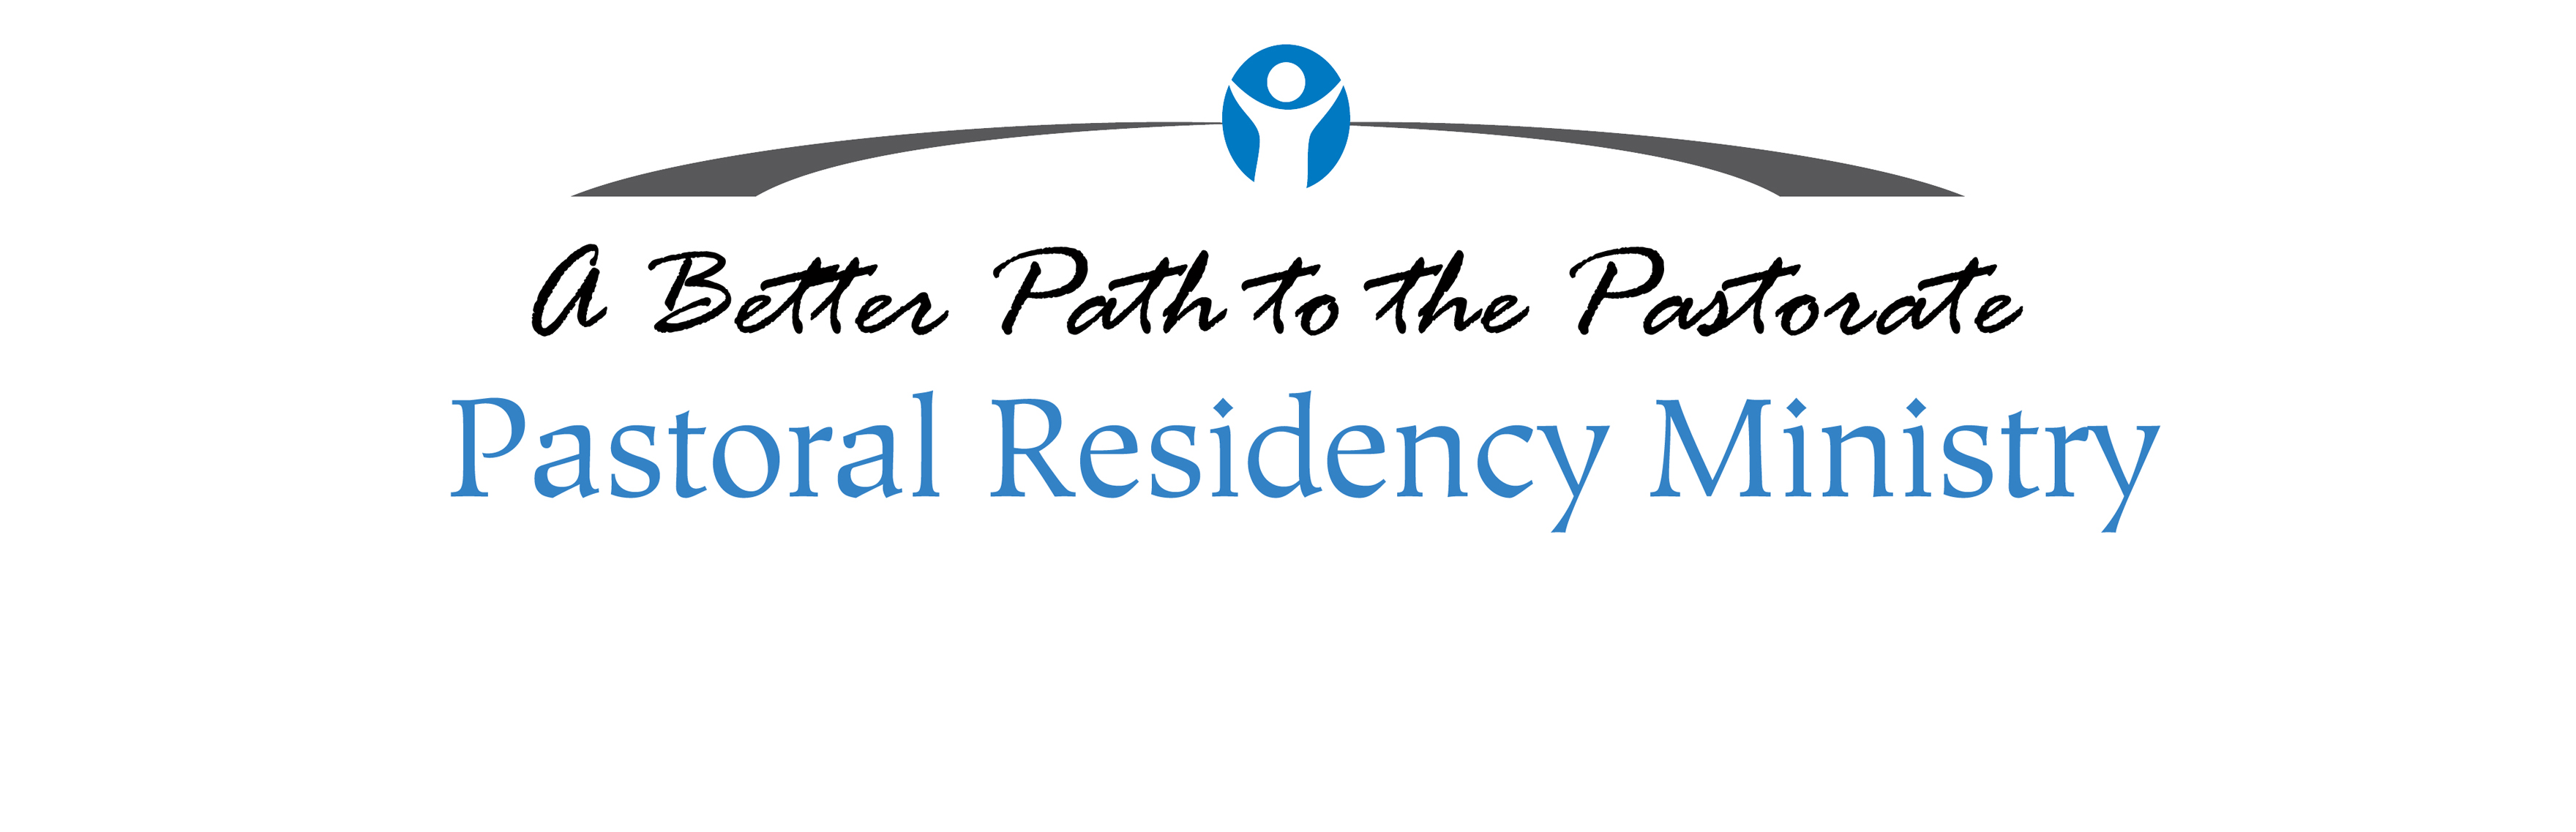 Pastoral Residency Ministry Header smaller